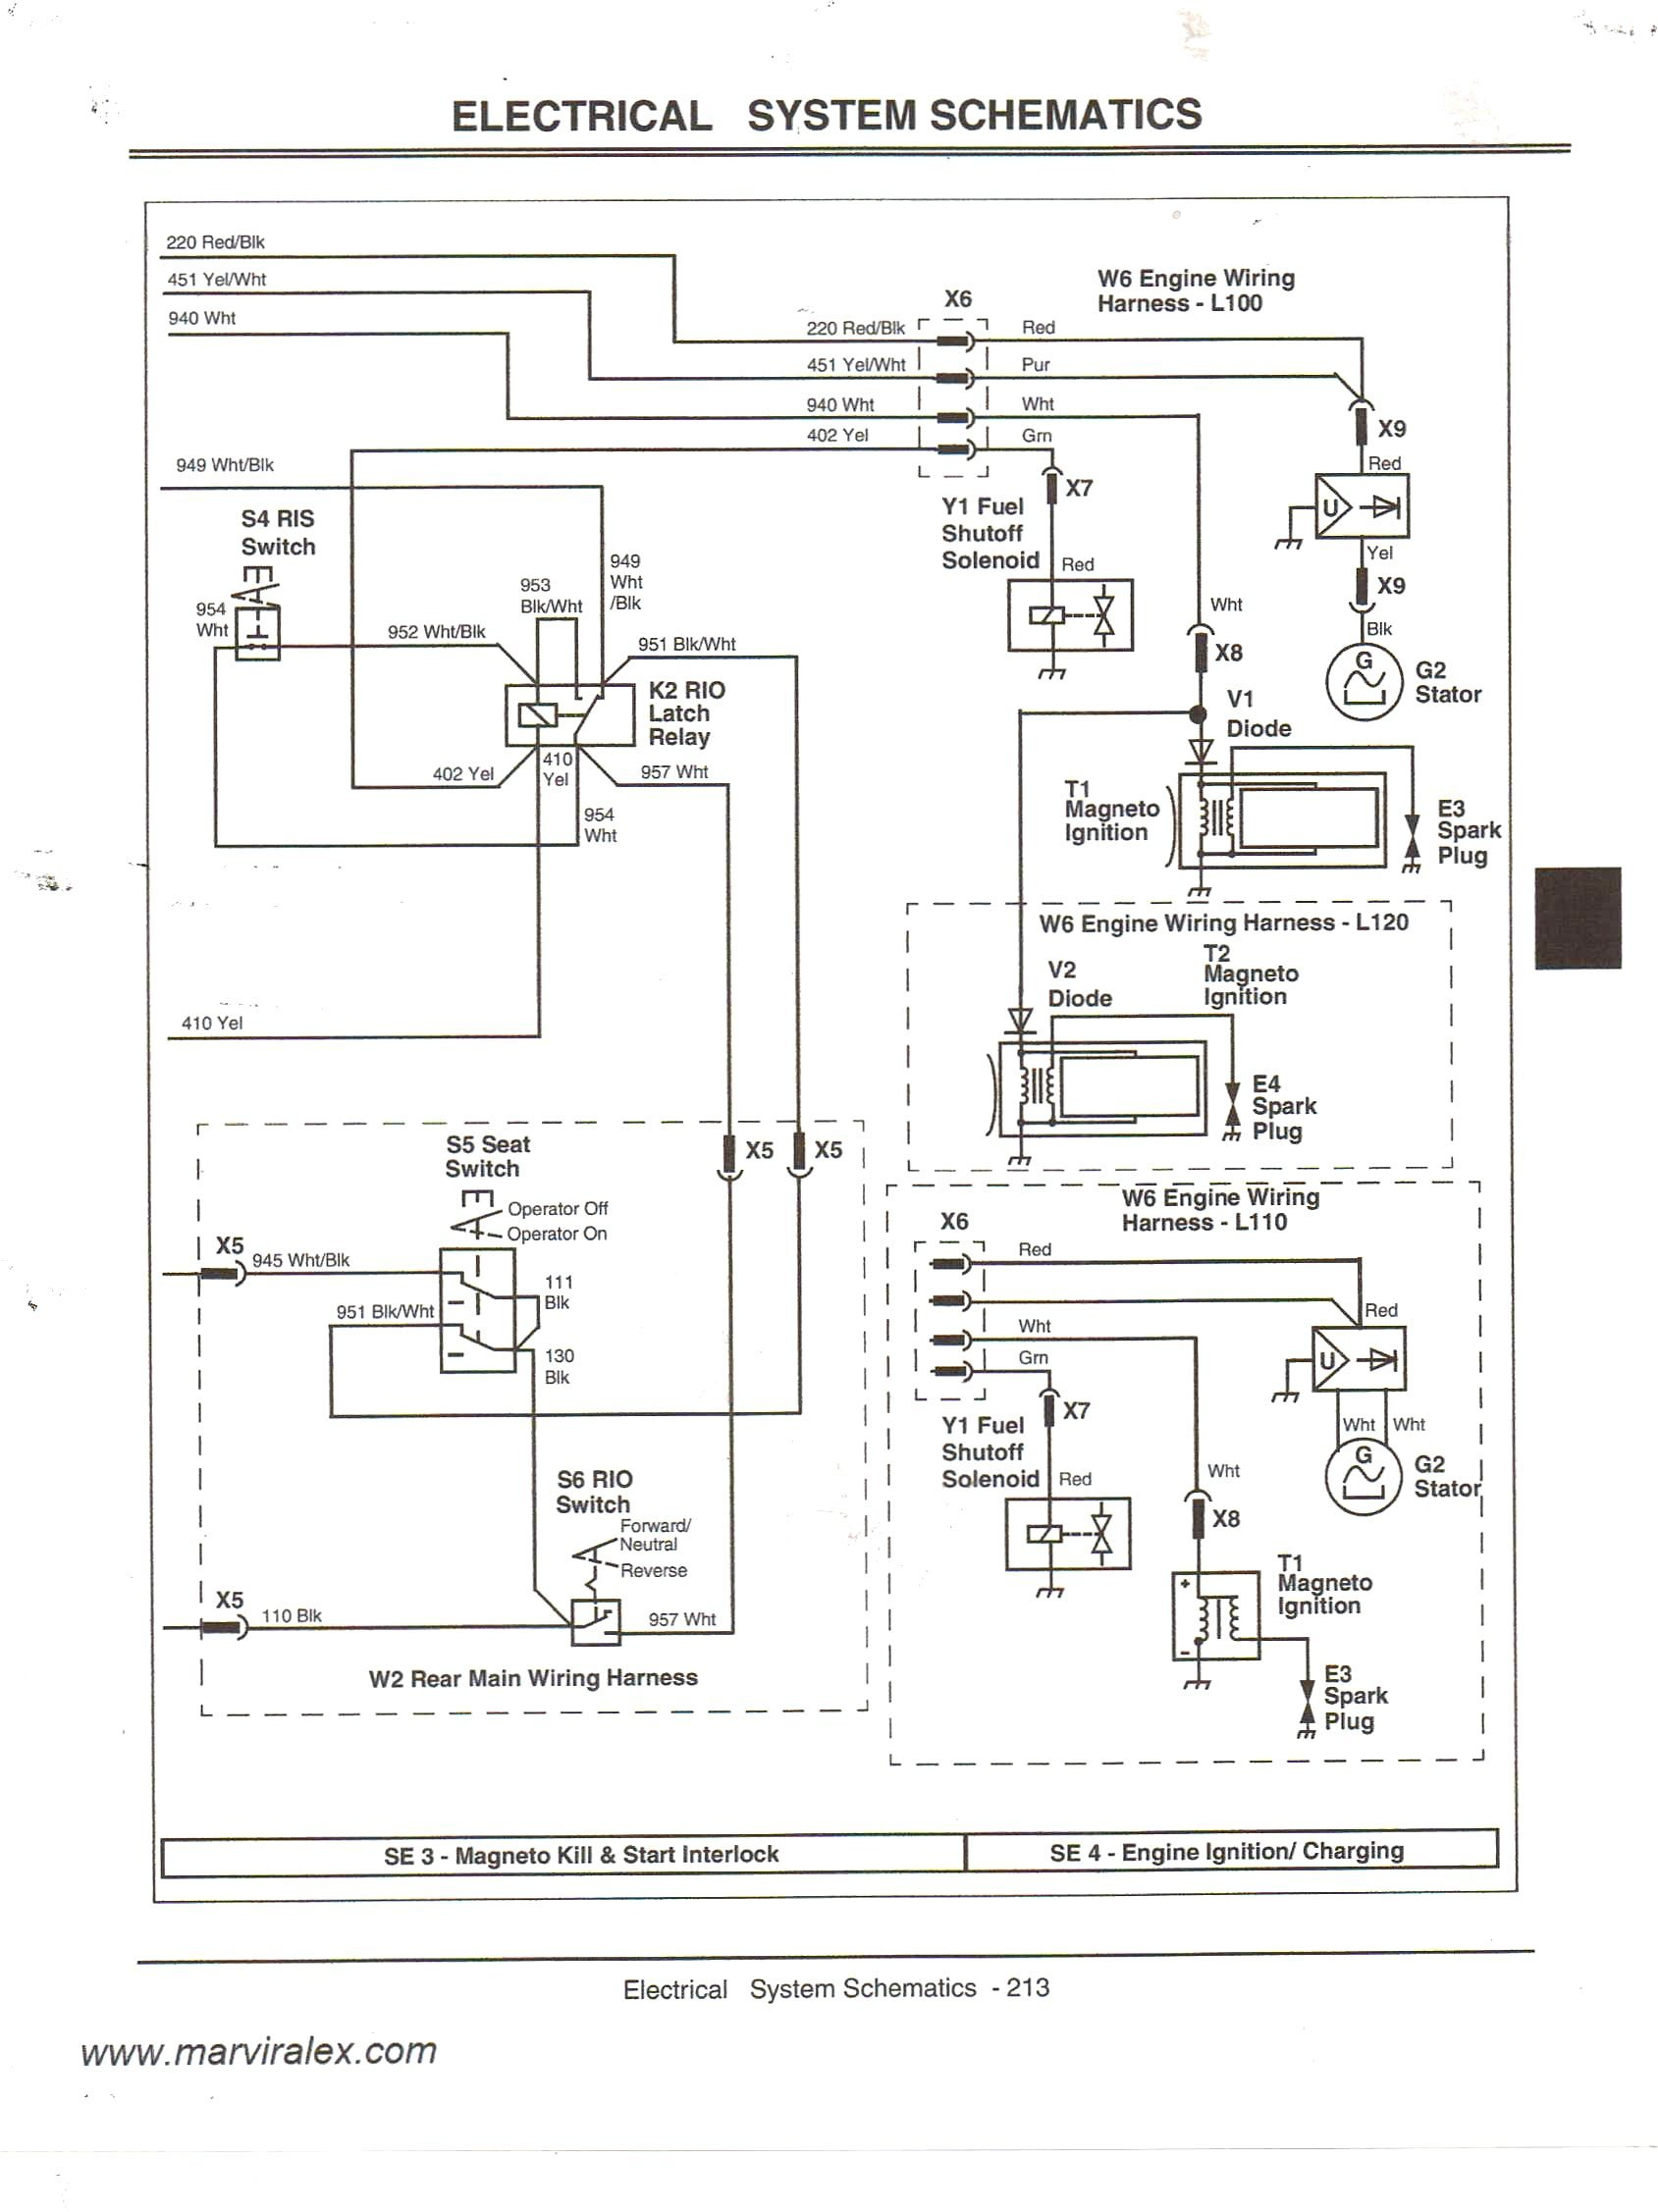 Lt155 Wiring Schematic | Manual E-Books - John Deere Lt155 Wiring Diagram